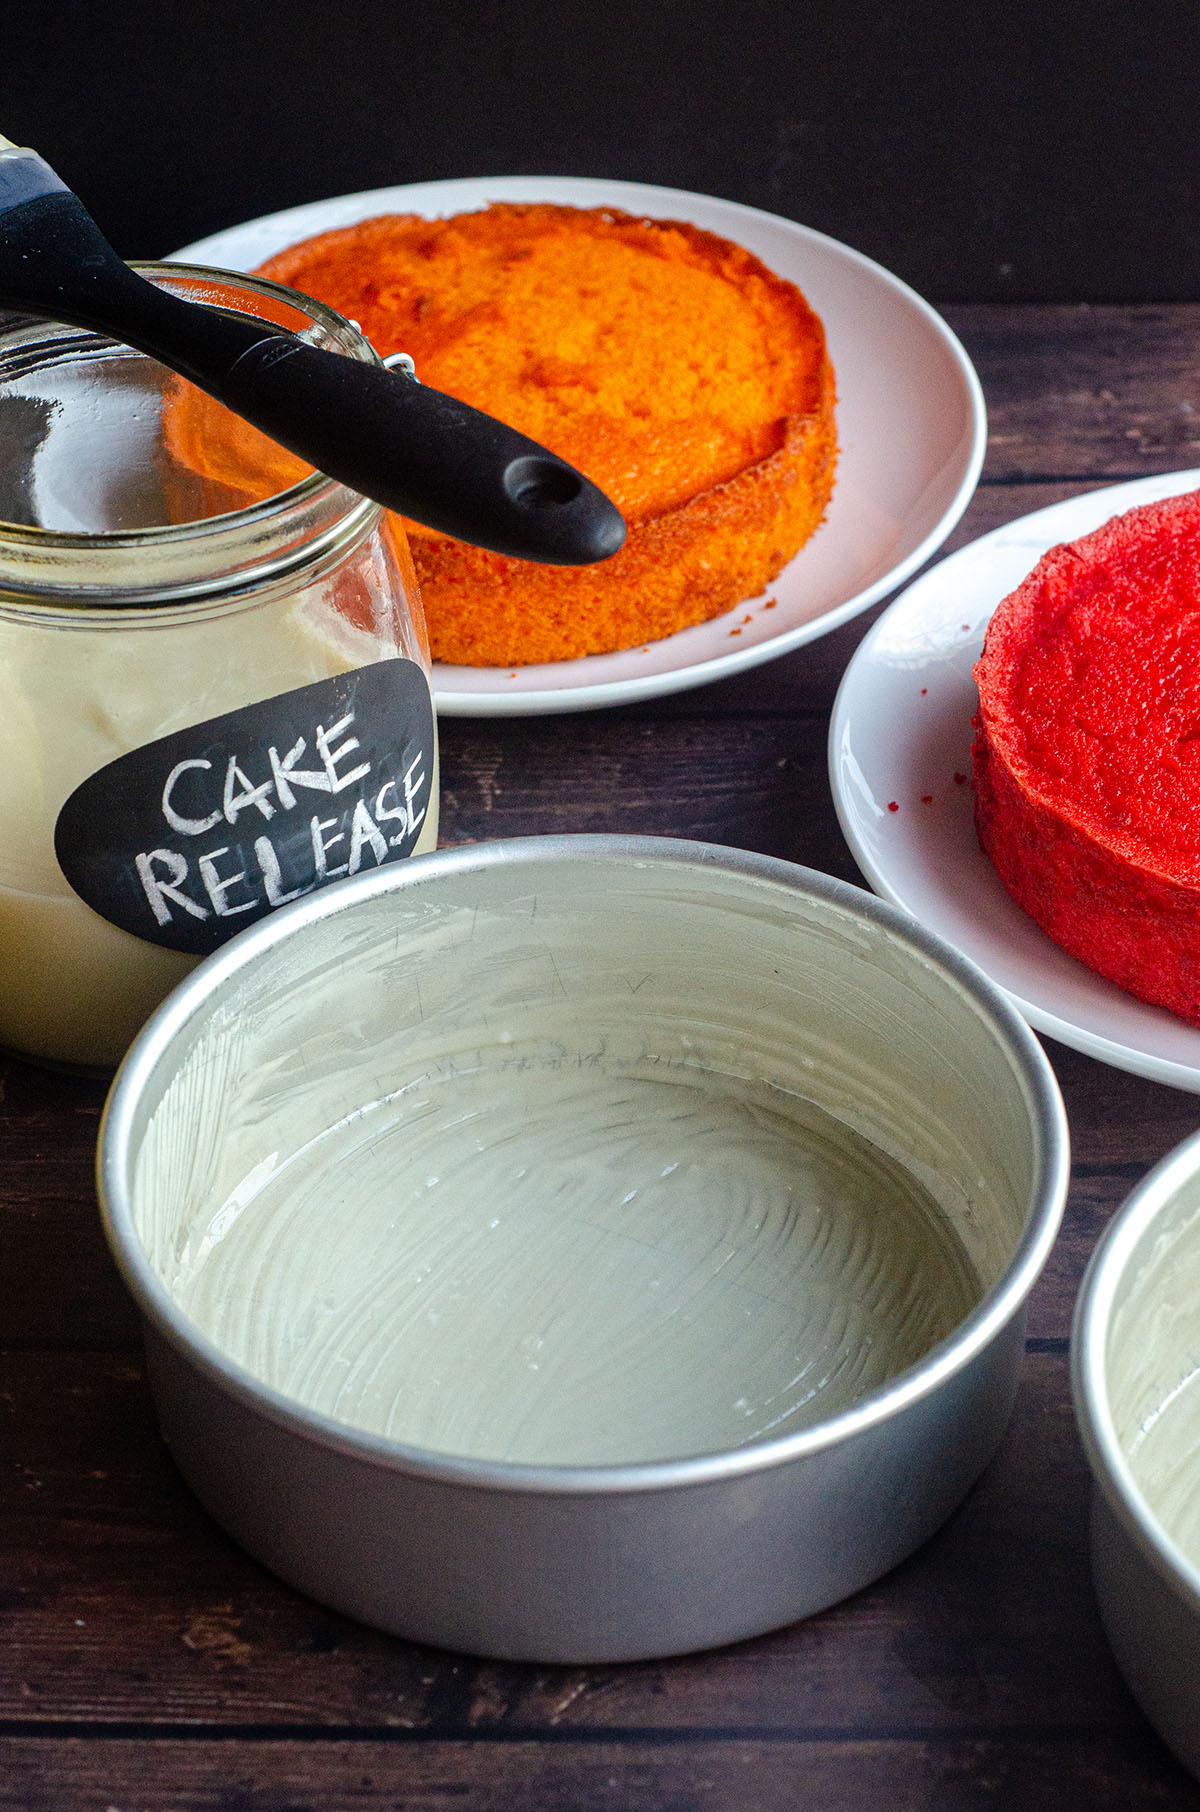 Just 3 ingredients and you'll never have trouble getting your cakes out of the pan again!